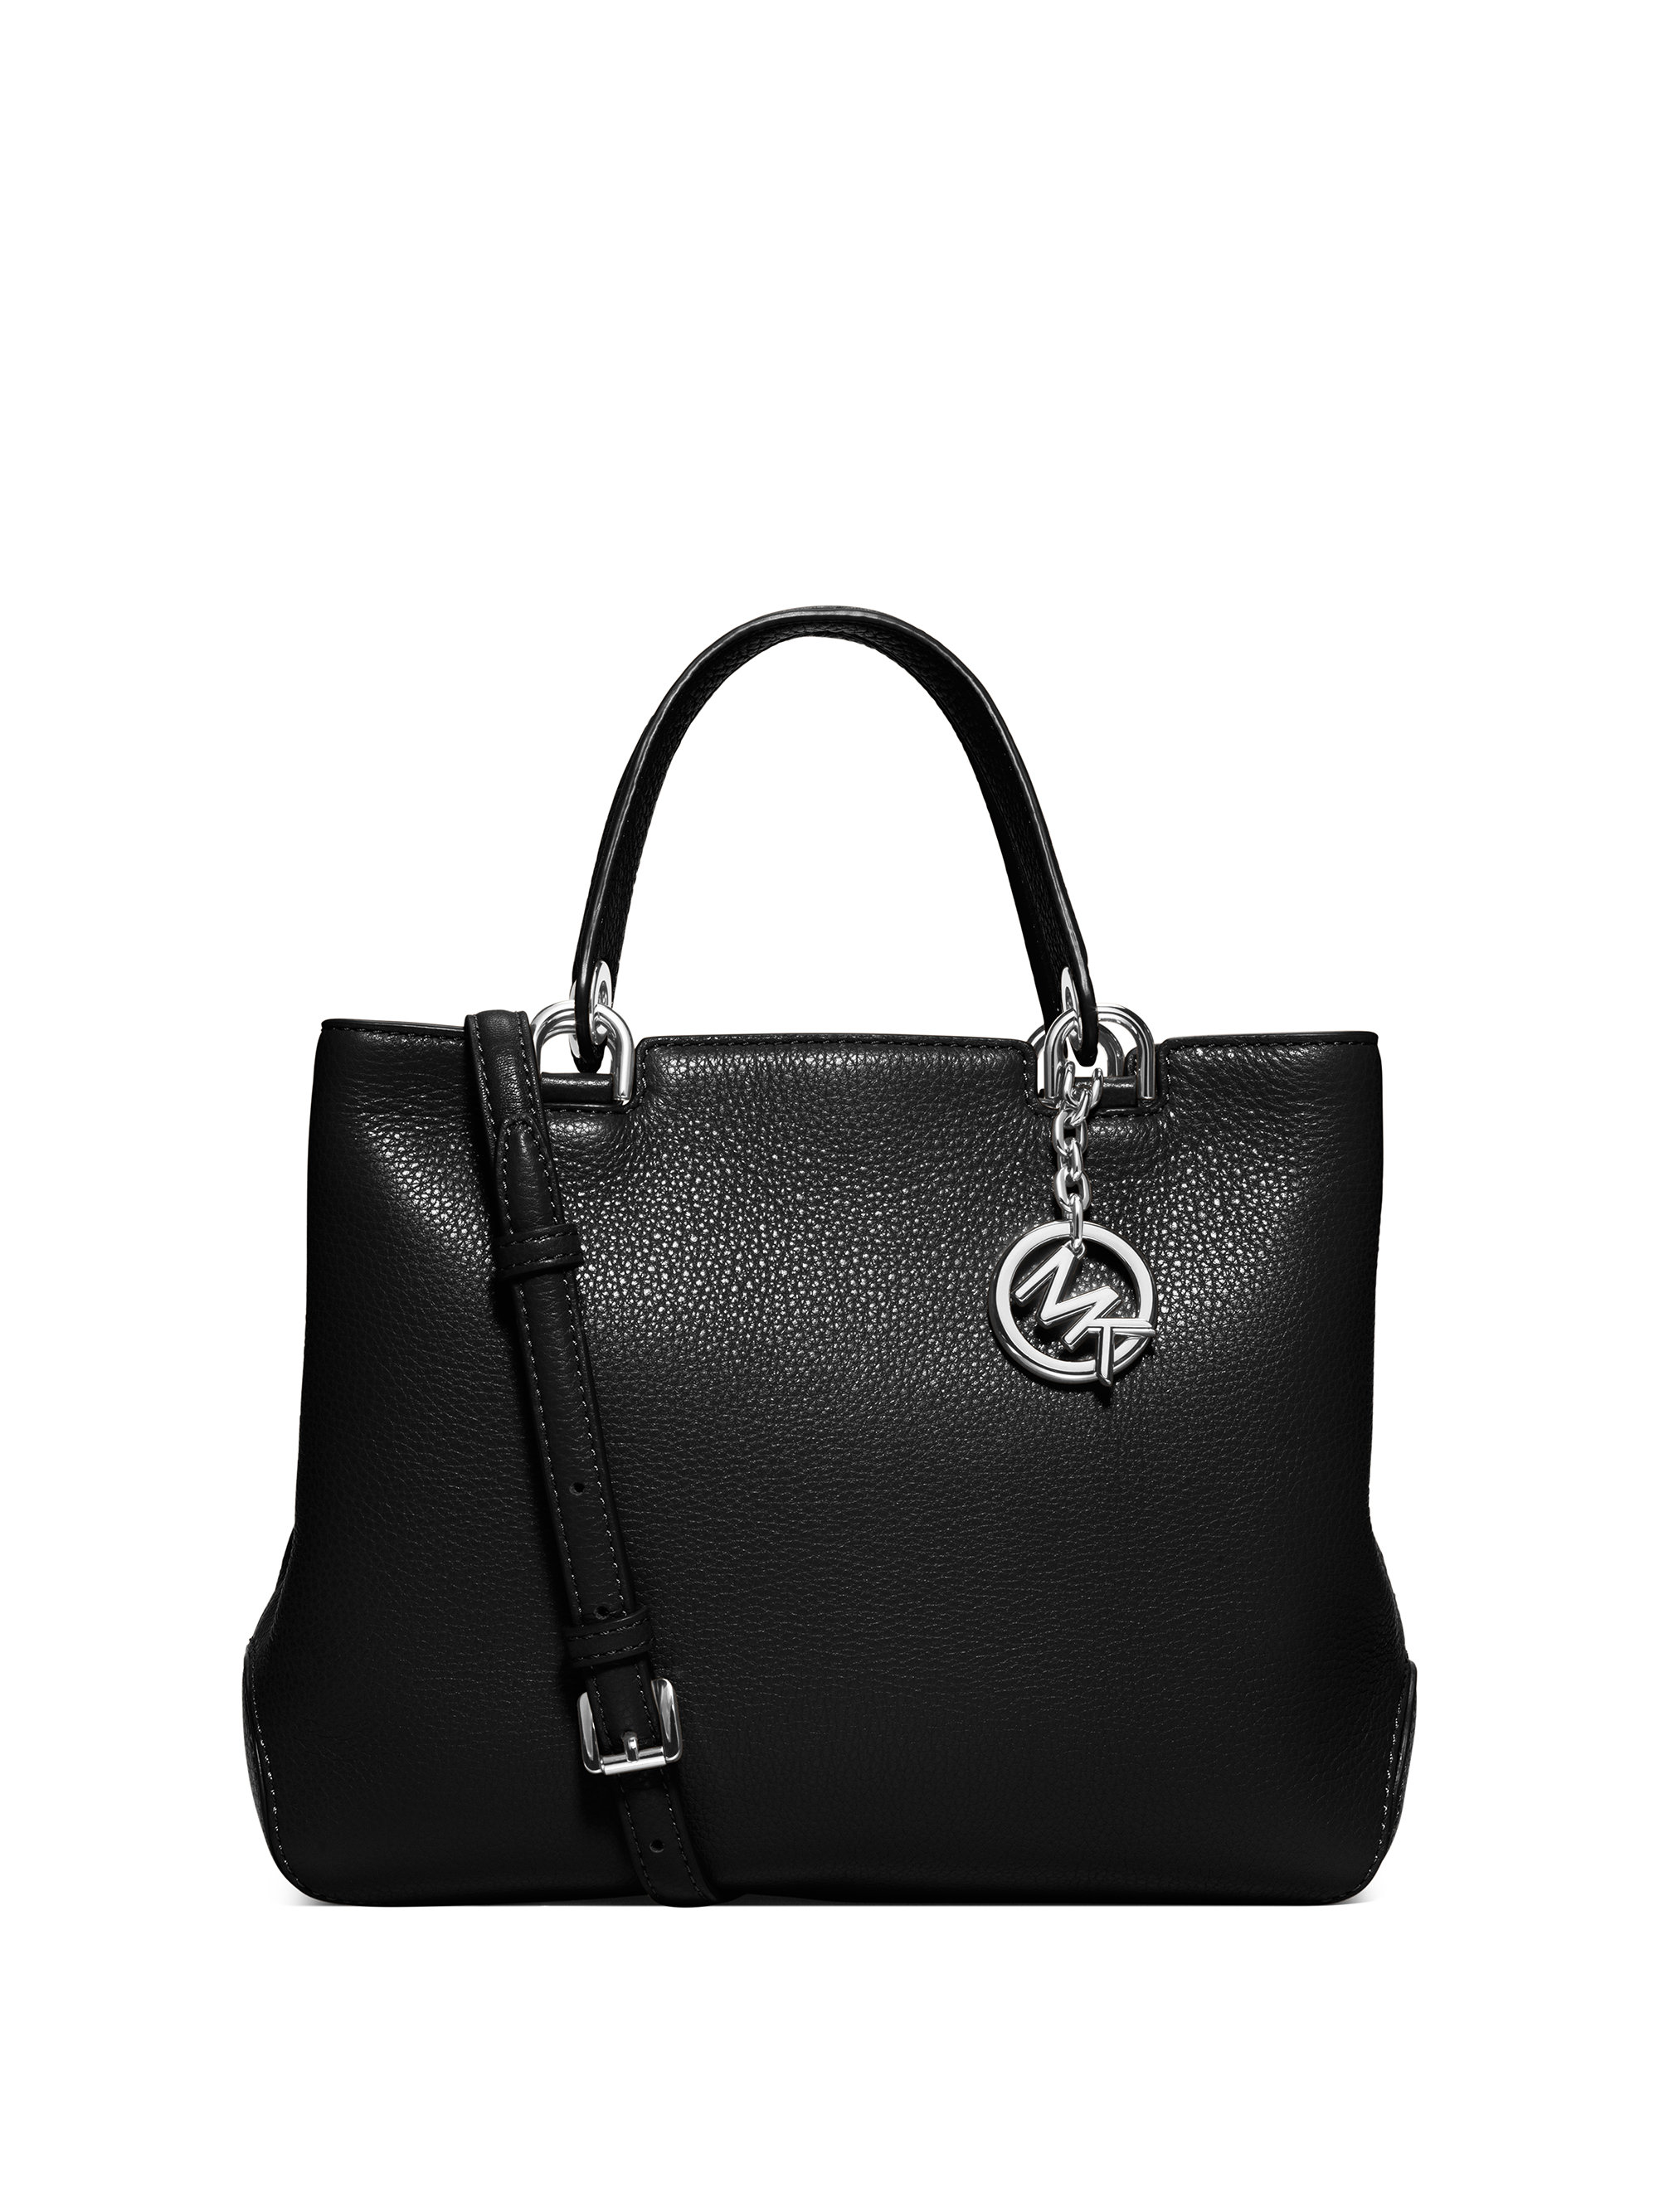 ae24576eb32d Gallery. Previously sold at: Saks Fifth Avenue · Women's Michael Kors Charm